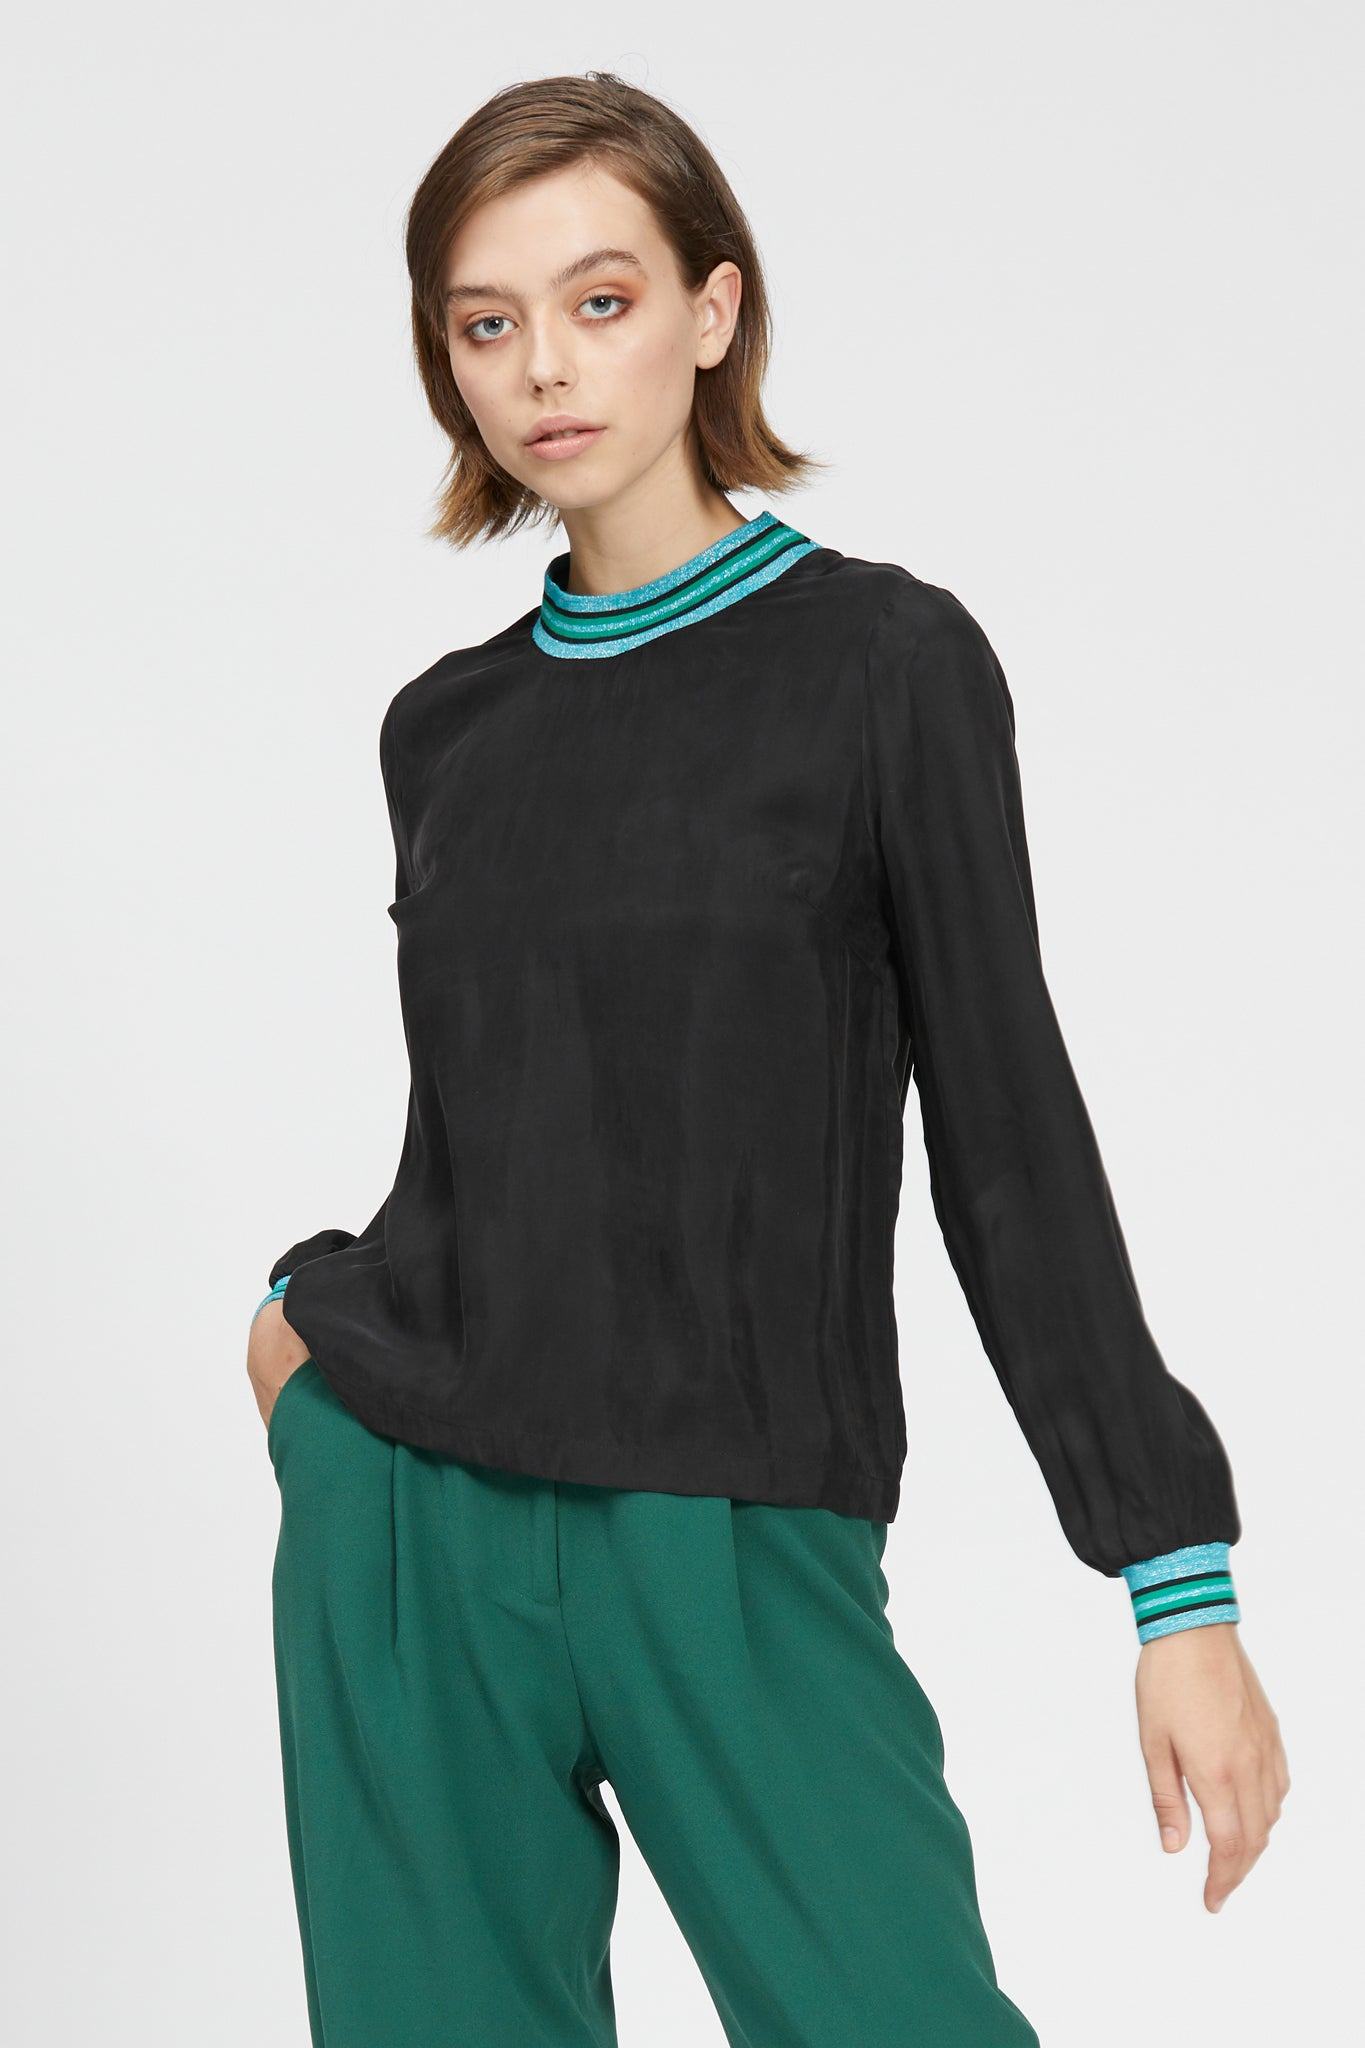 ghedina top black